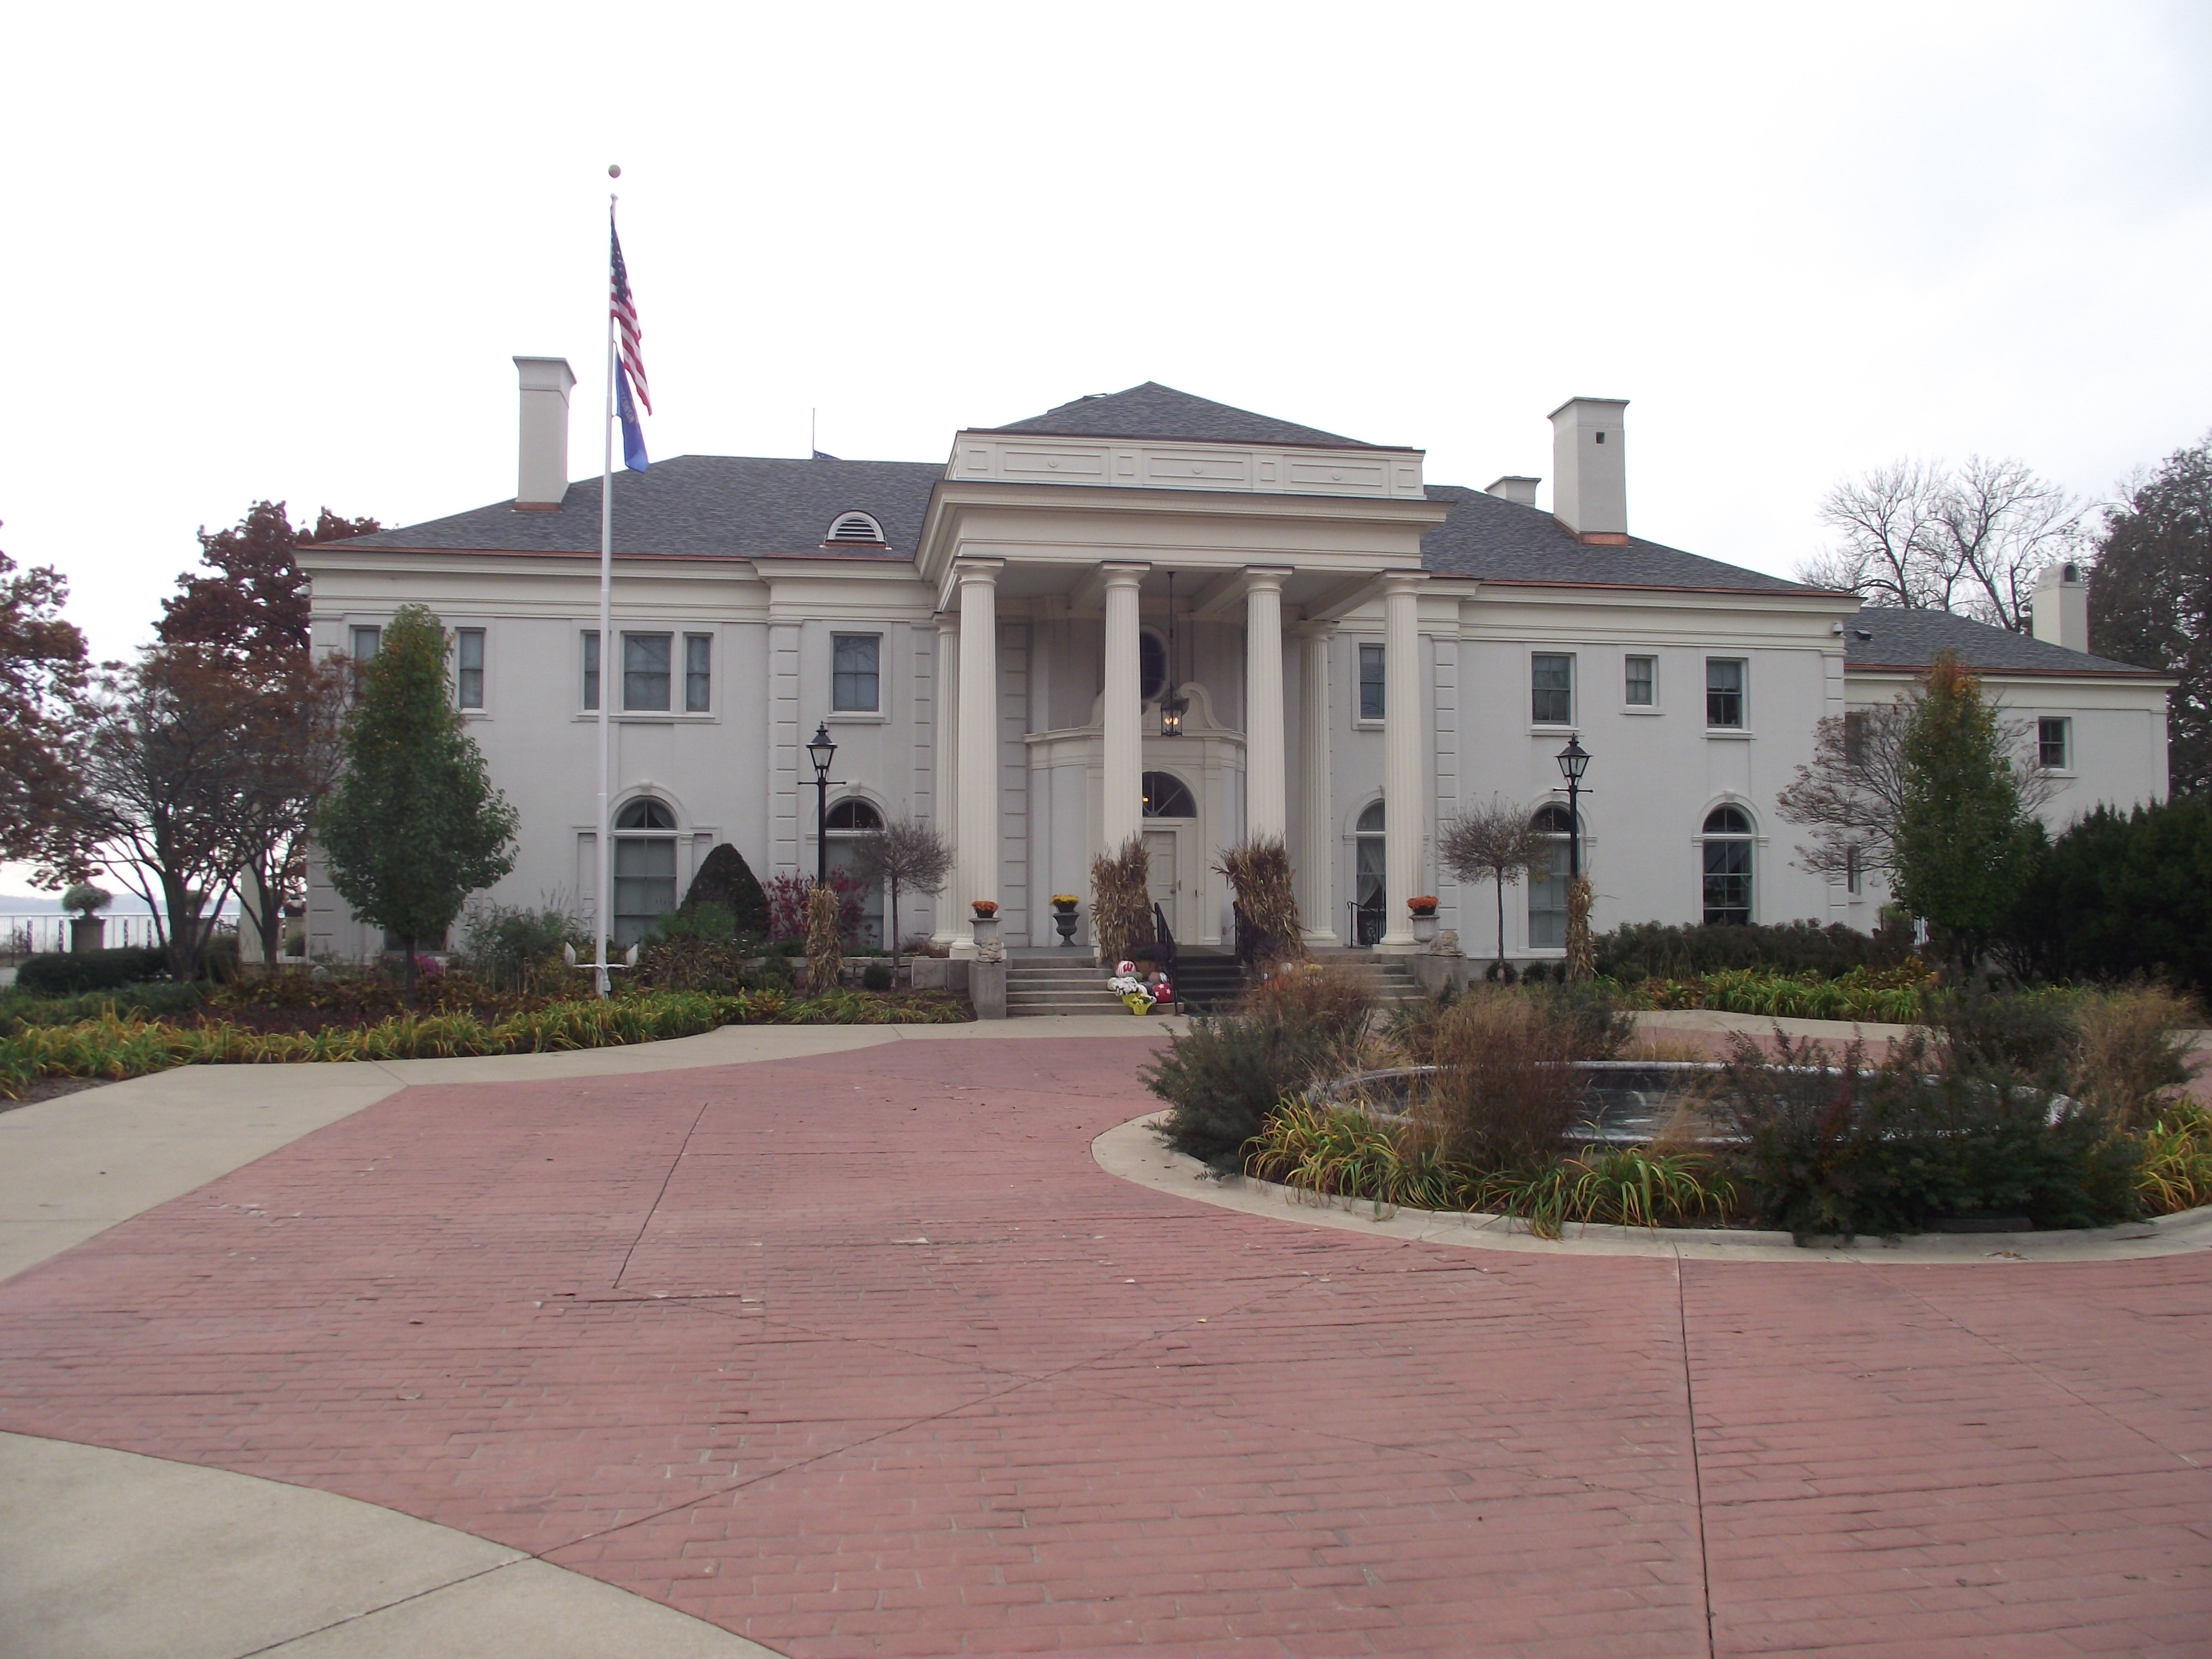 Governor's executive residence - Madison, WI - commericial inspection